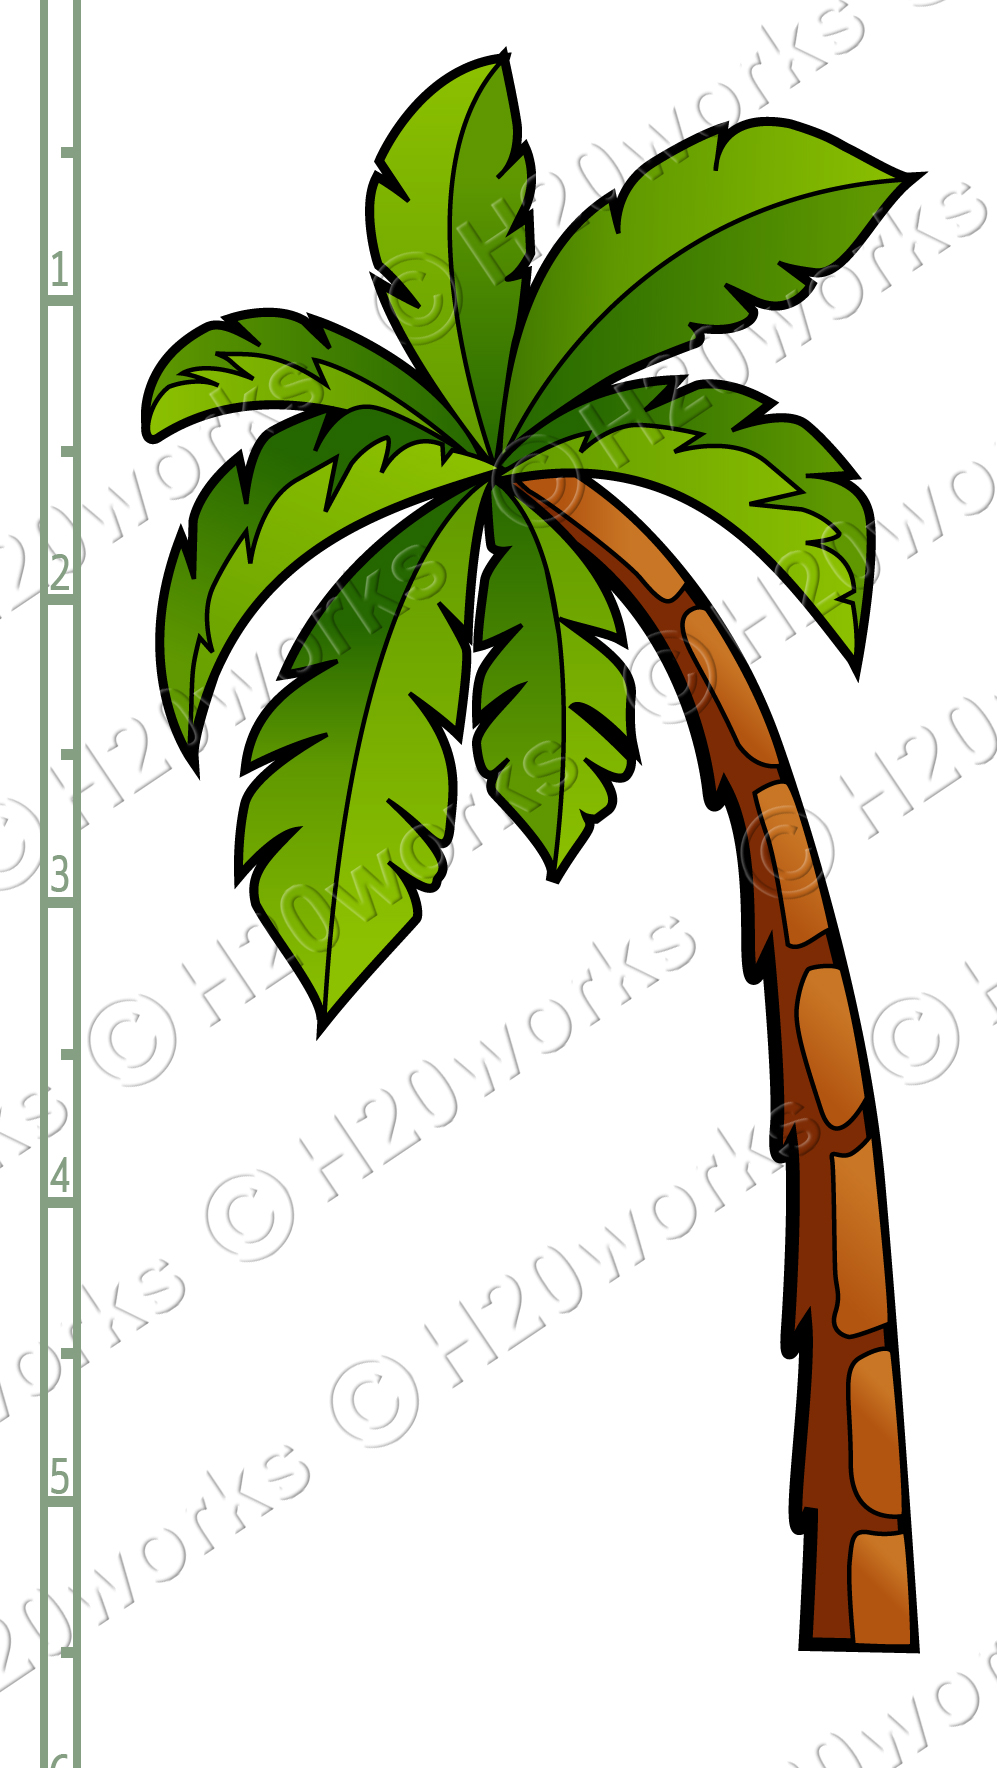 palm tree drawing png at getdrawings com free for personal use rh getdrawings com palm trees clipart free palm tree clip art black and white